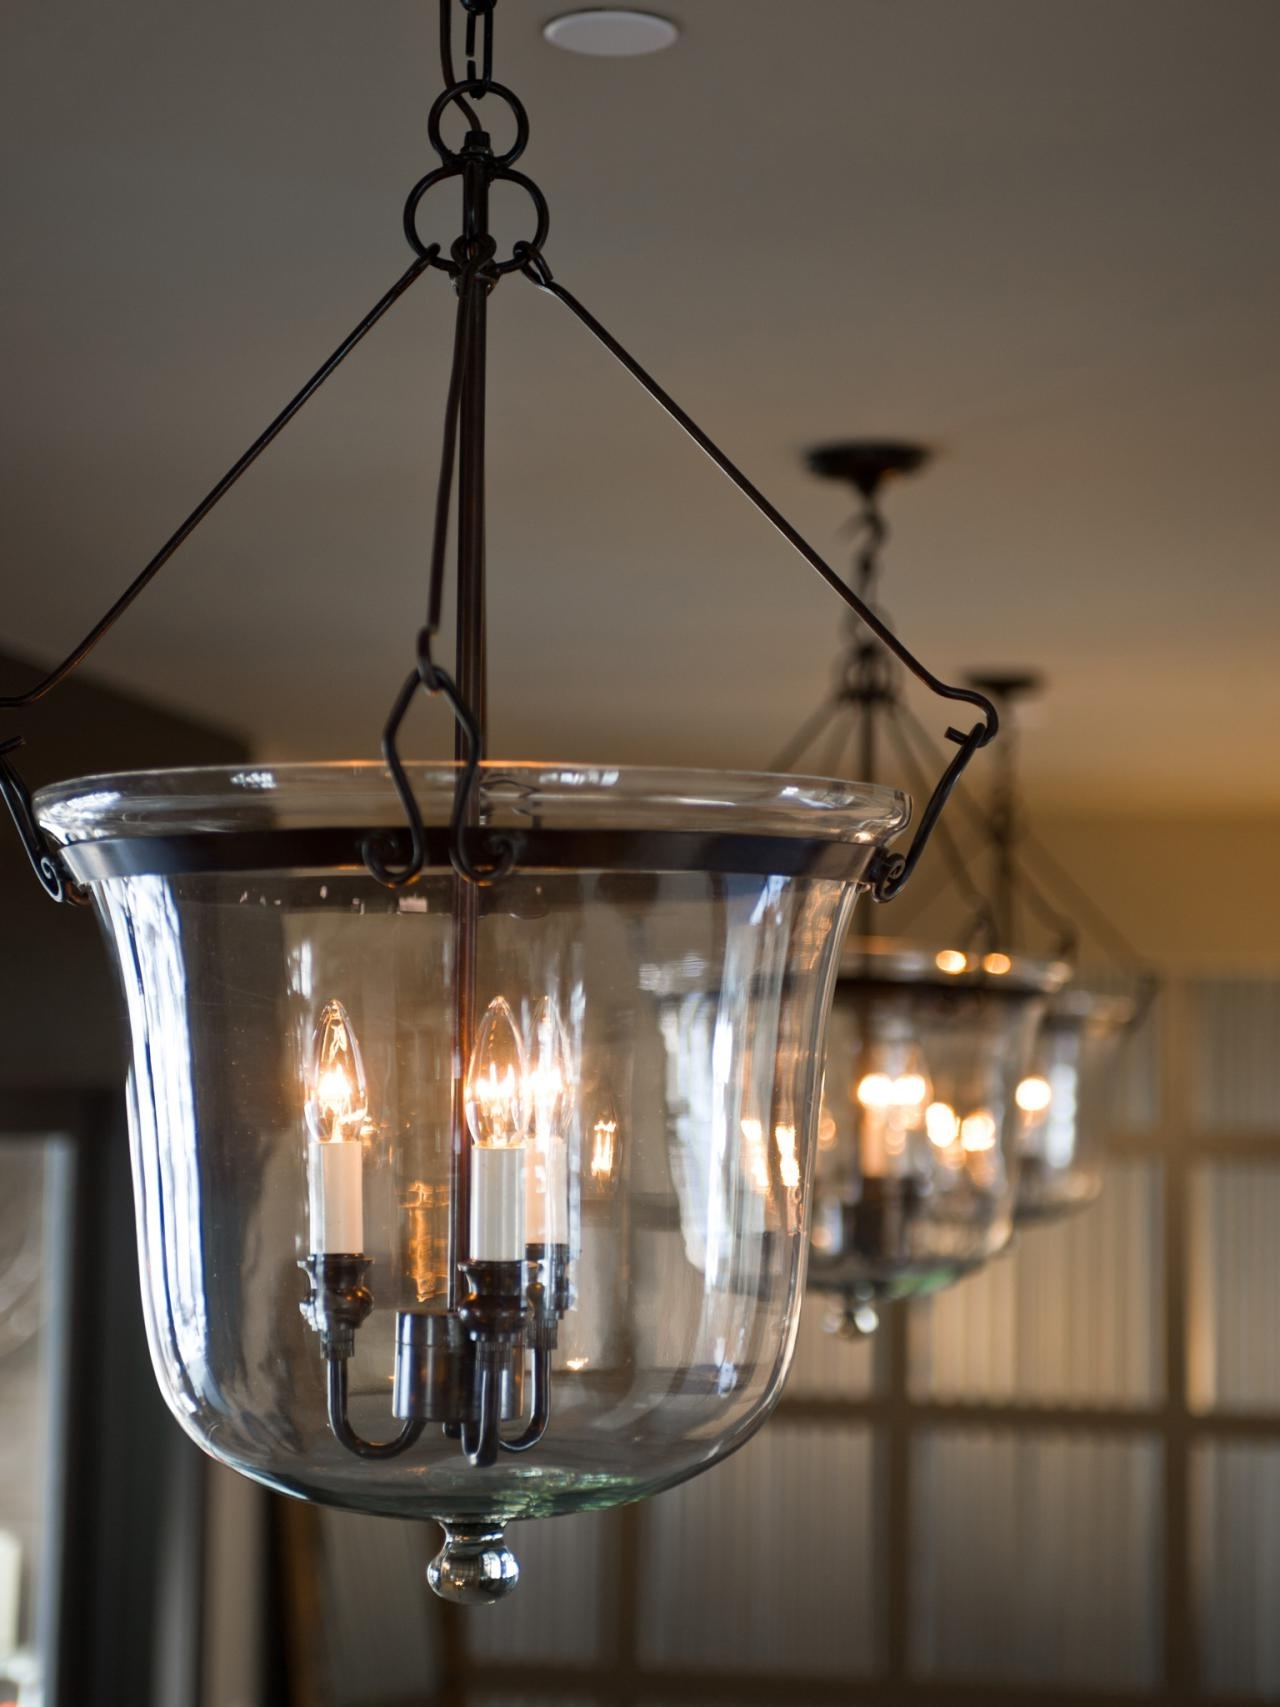 2018 Chandeliers For Low Ceilings For Light Fixture : Large Foyer Chandeliers Light Fixtures For Low (View 14 of 15)